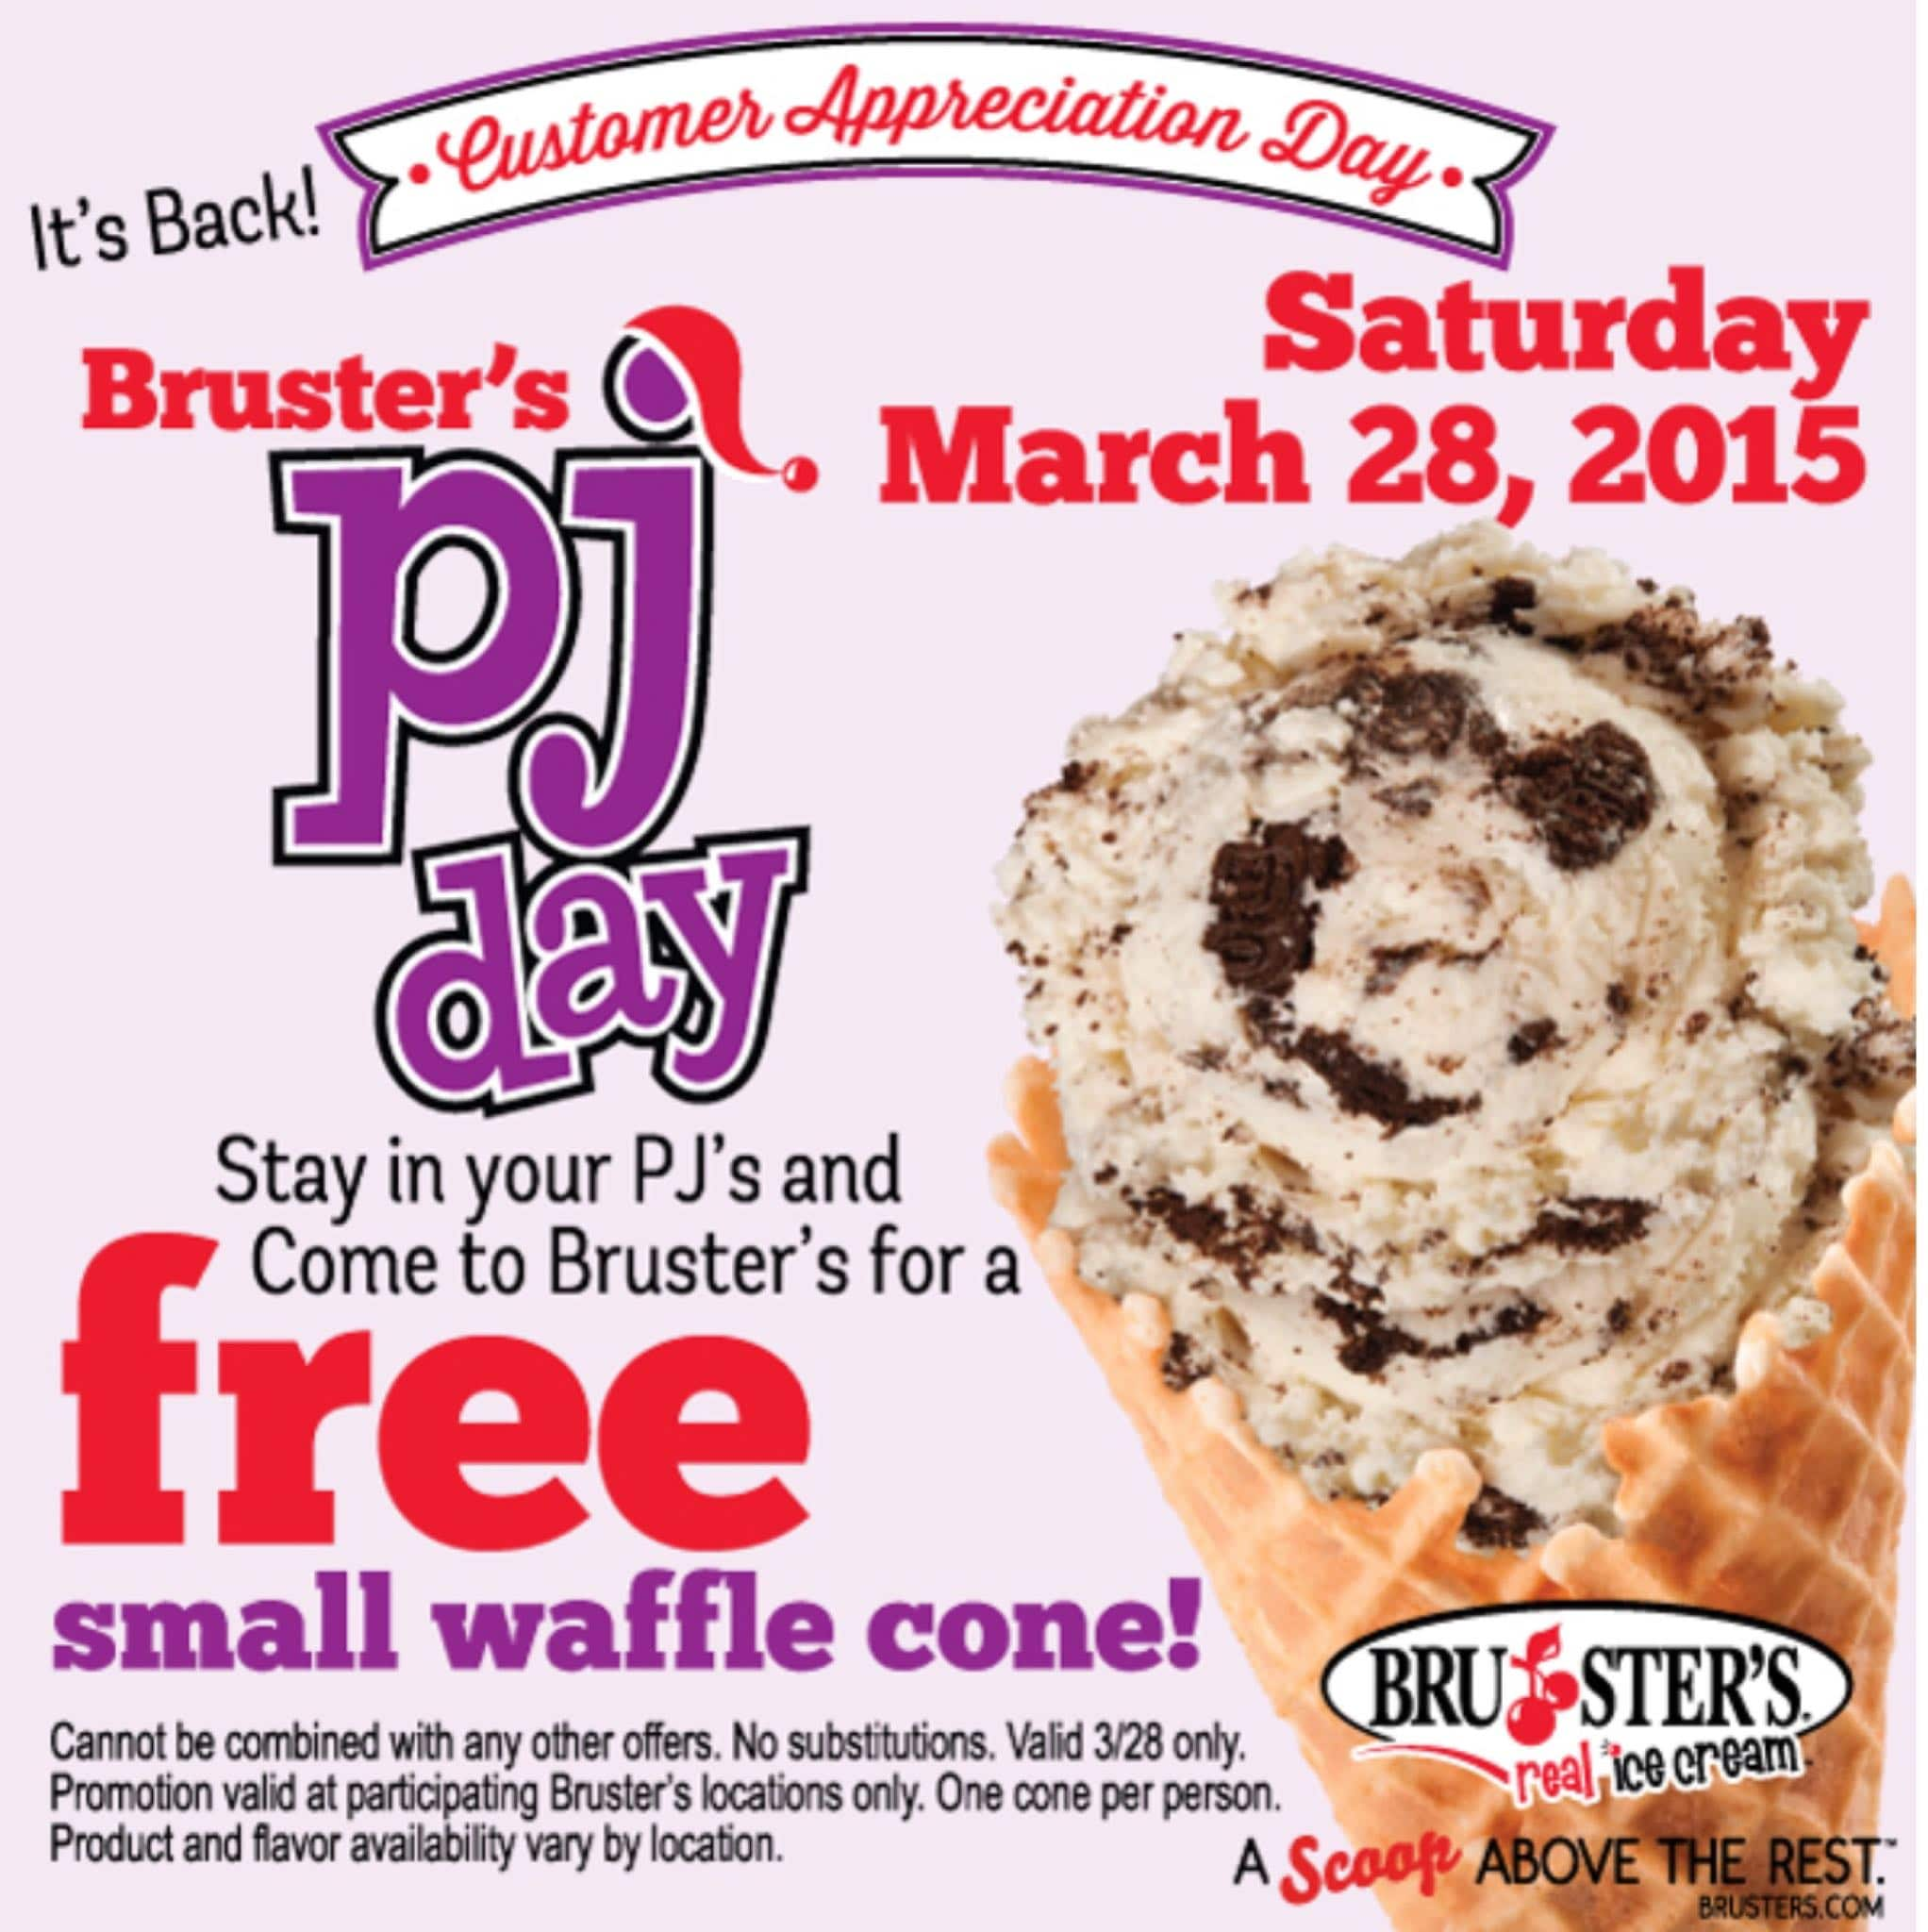 Free Small Waffle Cone at Bruster's When You Wear Your PJ's Today